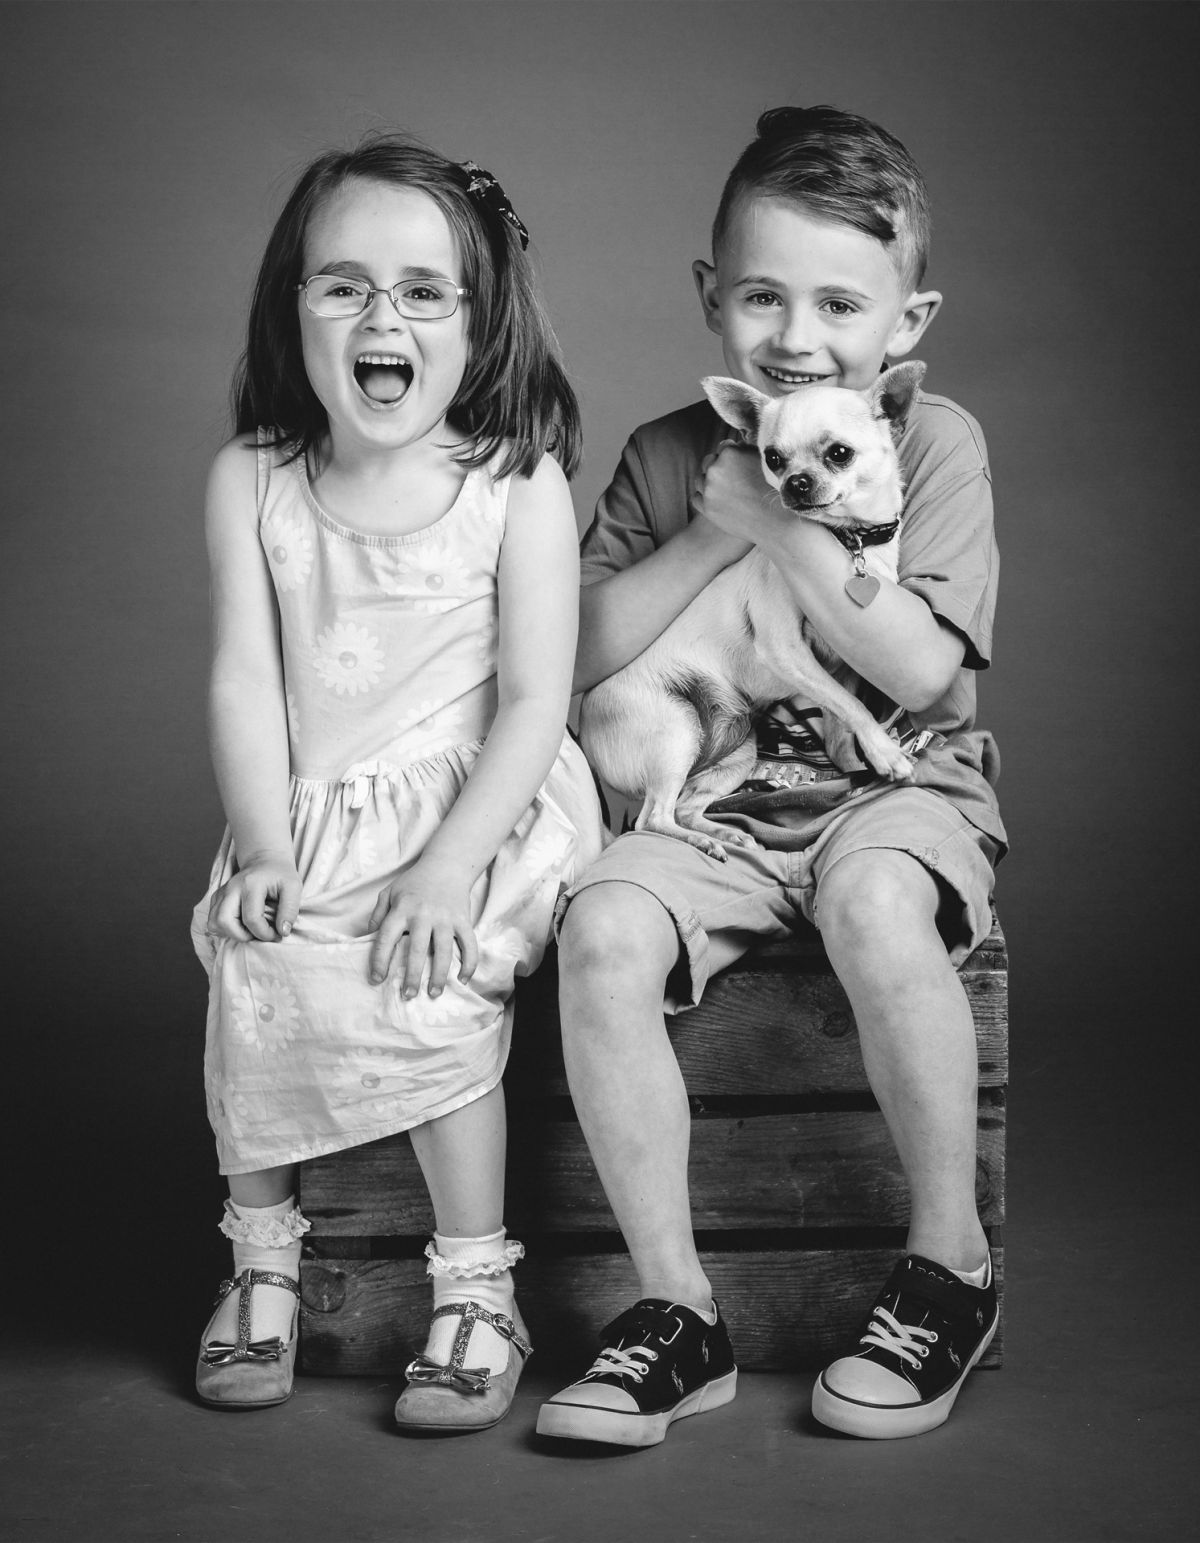 Boy and Girl sitting on a box holding a small dog